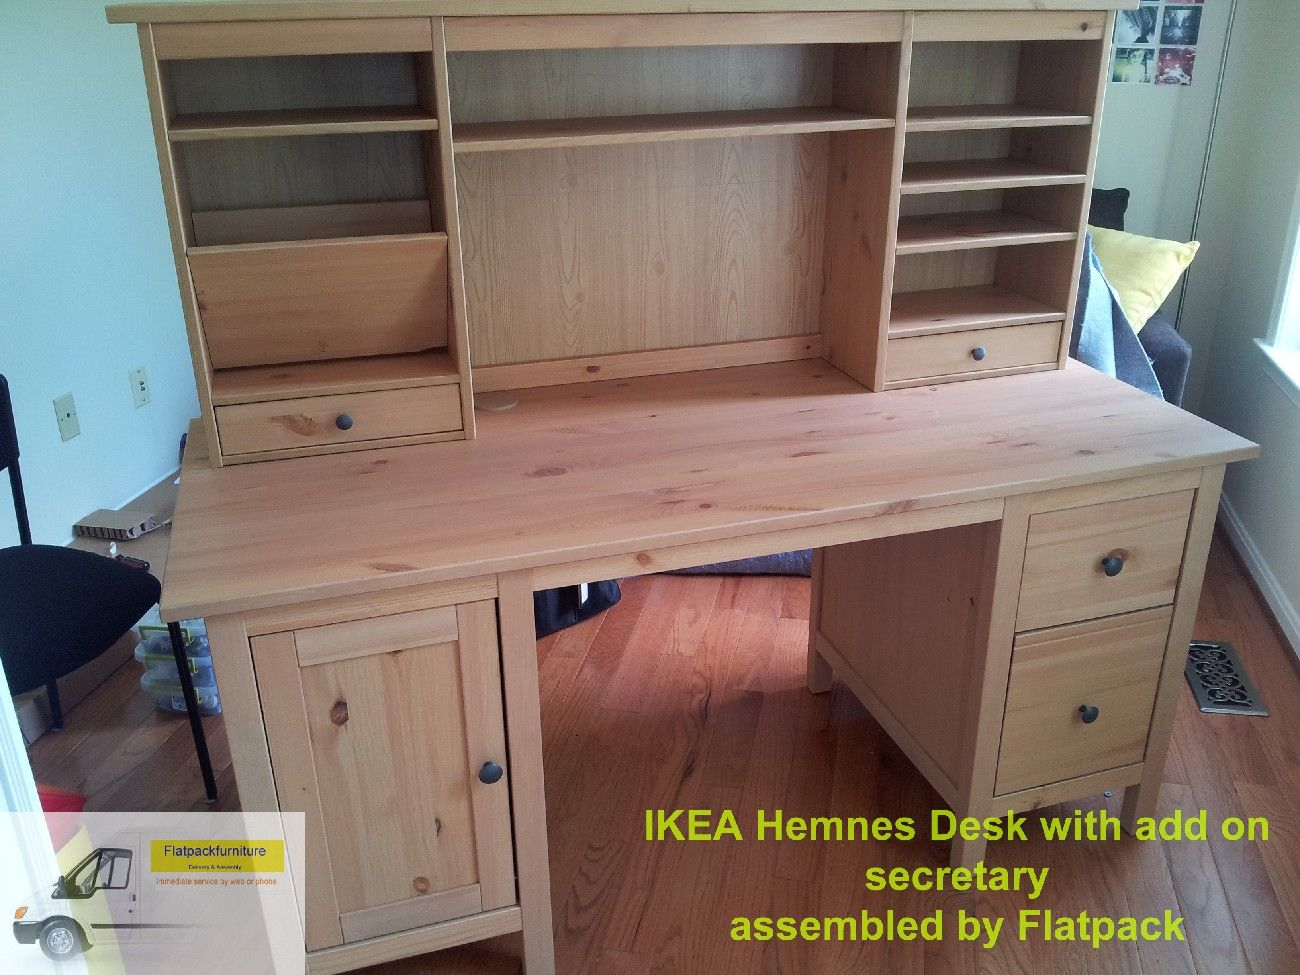 Ikea hemnes desk with add on unit article number: 591.225.23 best f